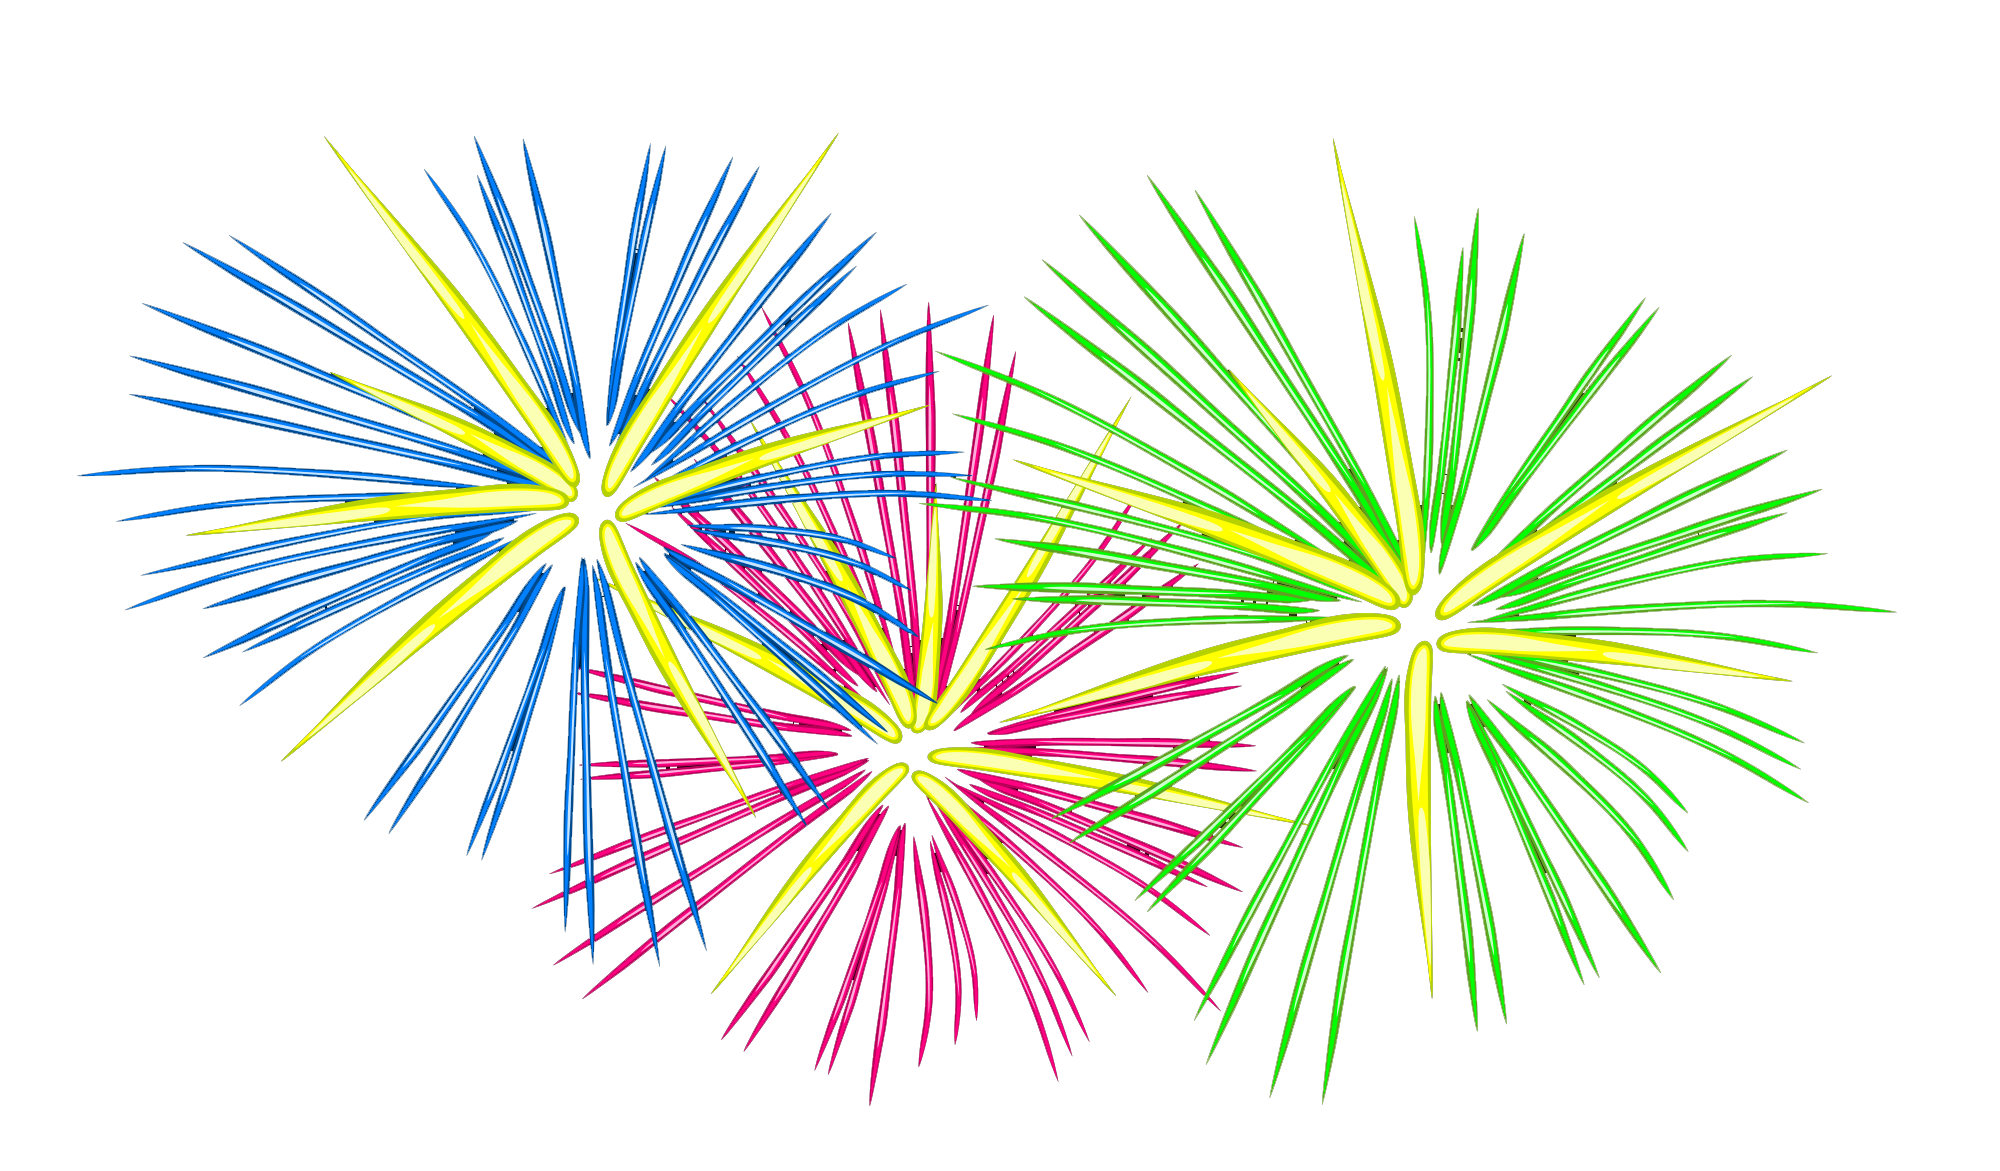 Description Fireworks 2 Png-Description Fireworks 2 Png-4